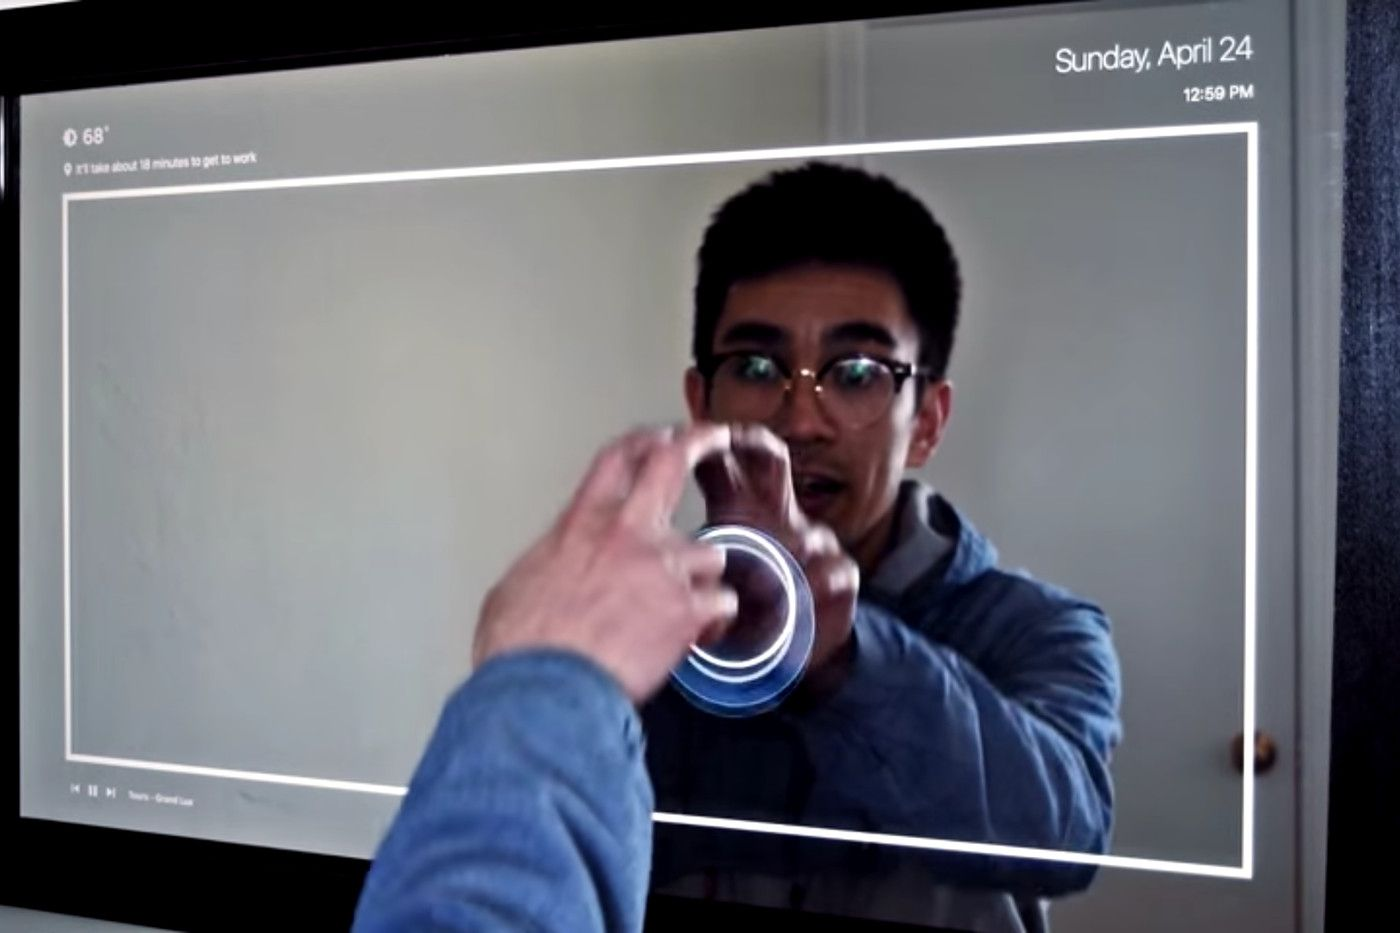 Diy Smart Mirrors Are Still Irresistible And This One Has A